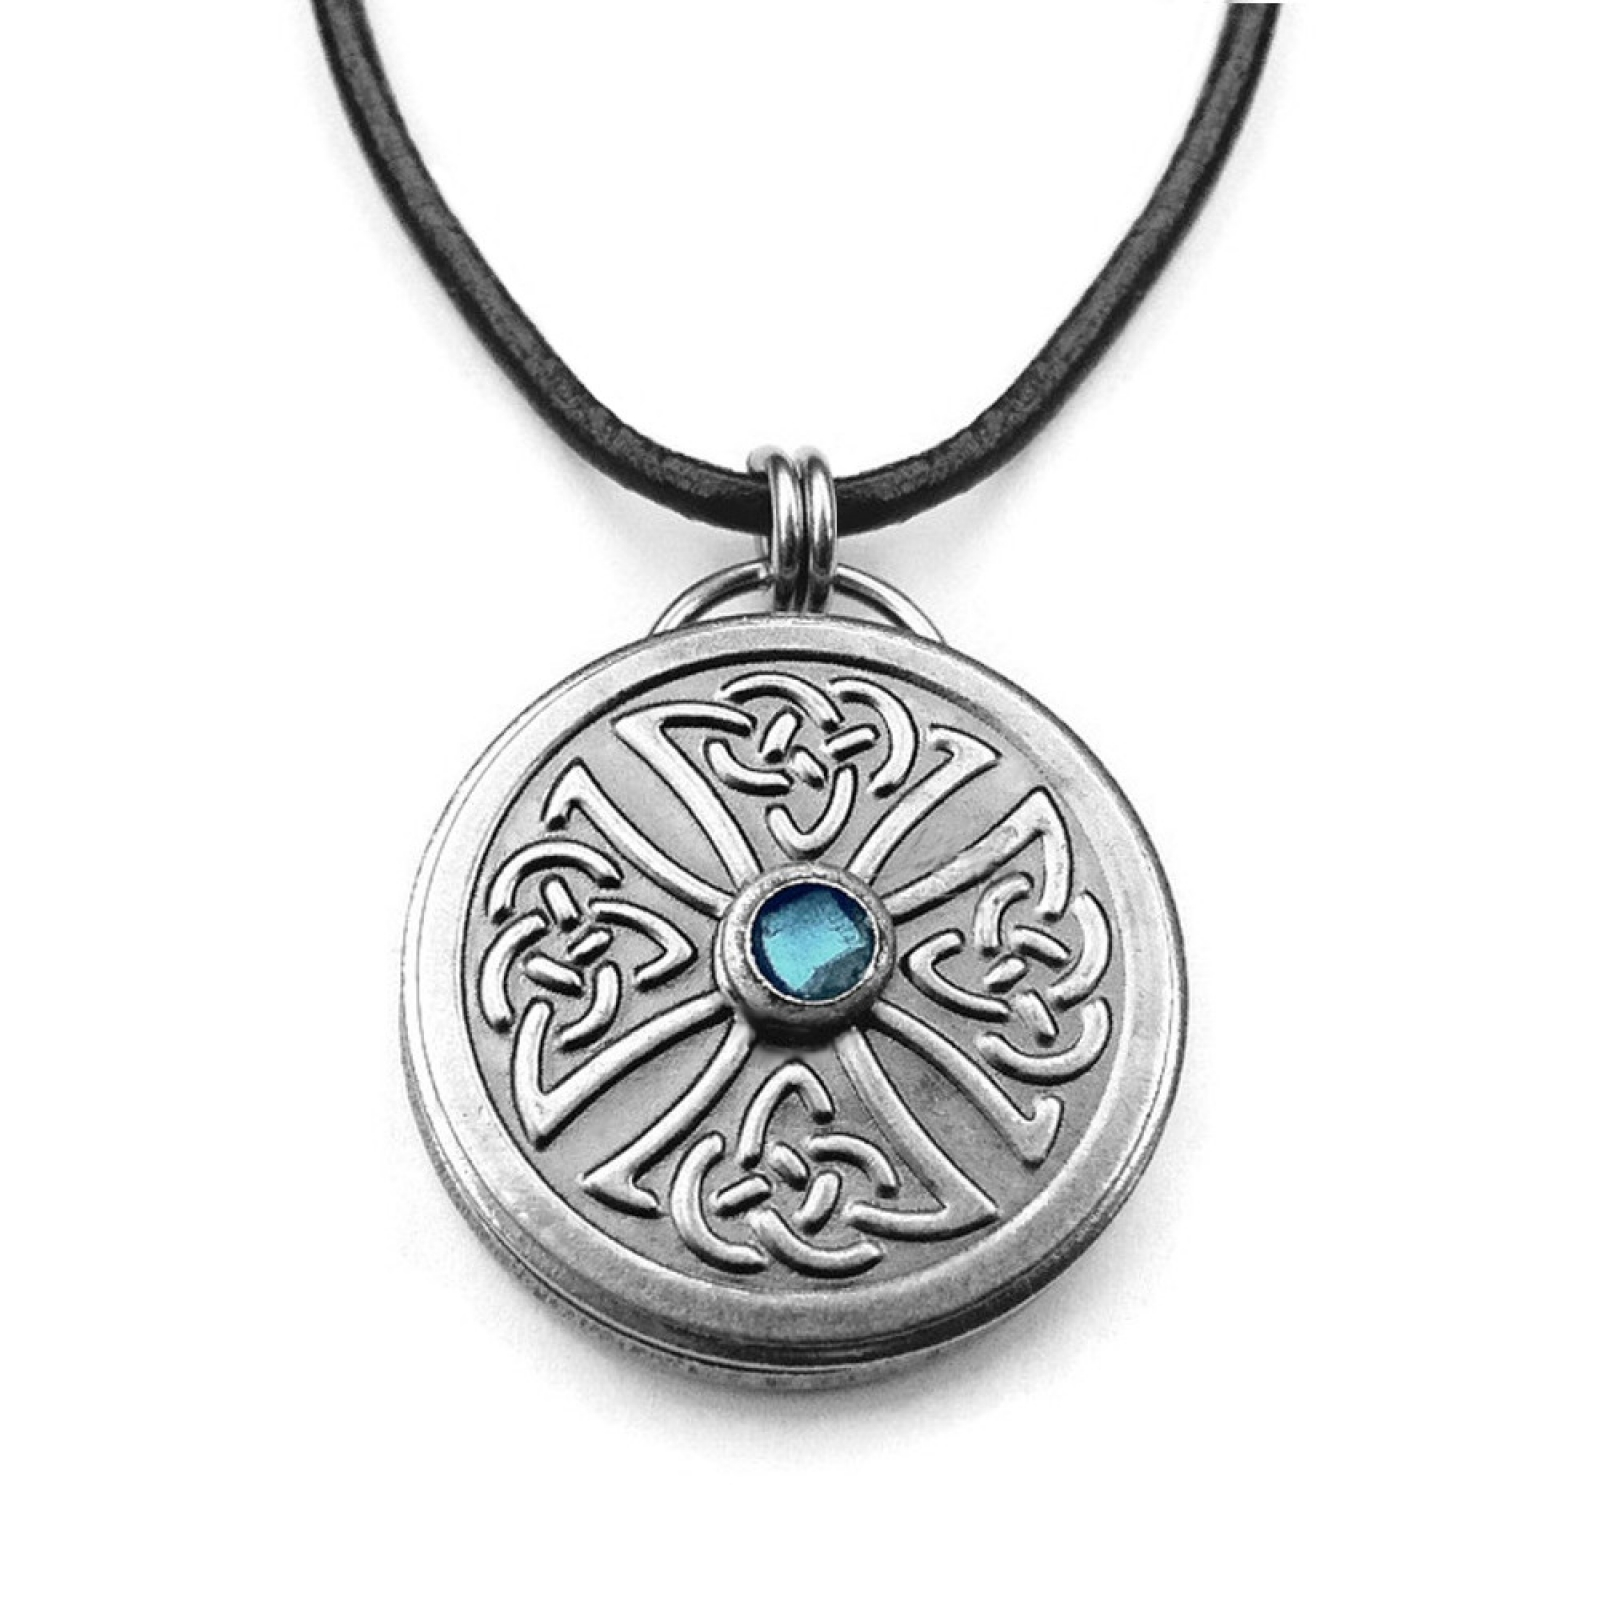 Brand-new Irish Celtic Knot Necklace for Man on Black Leather Necklace Chain  RM13